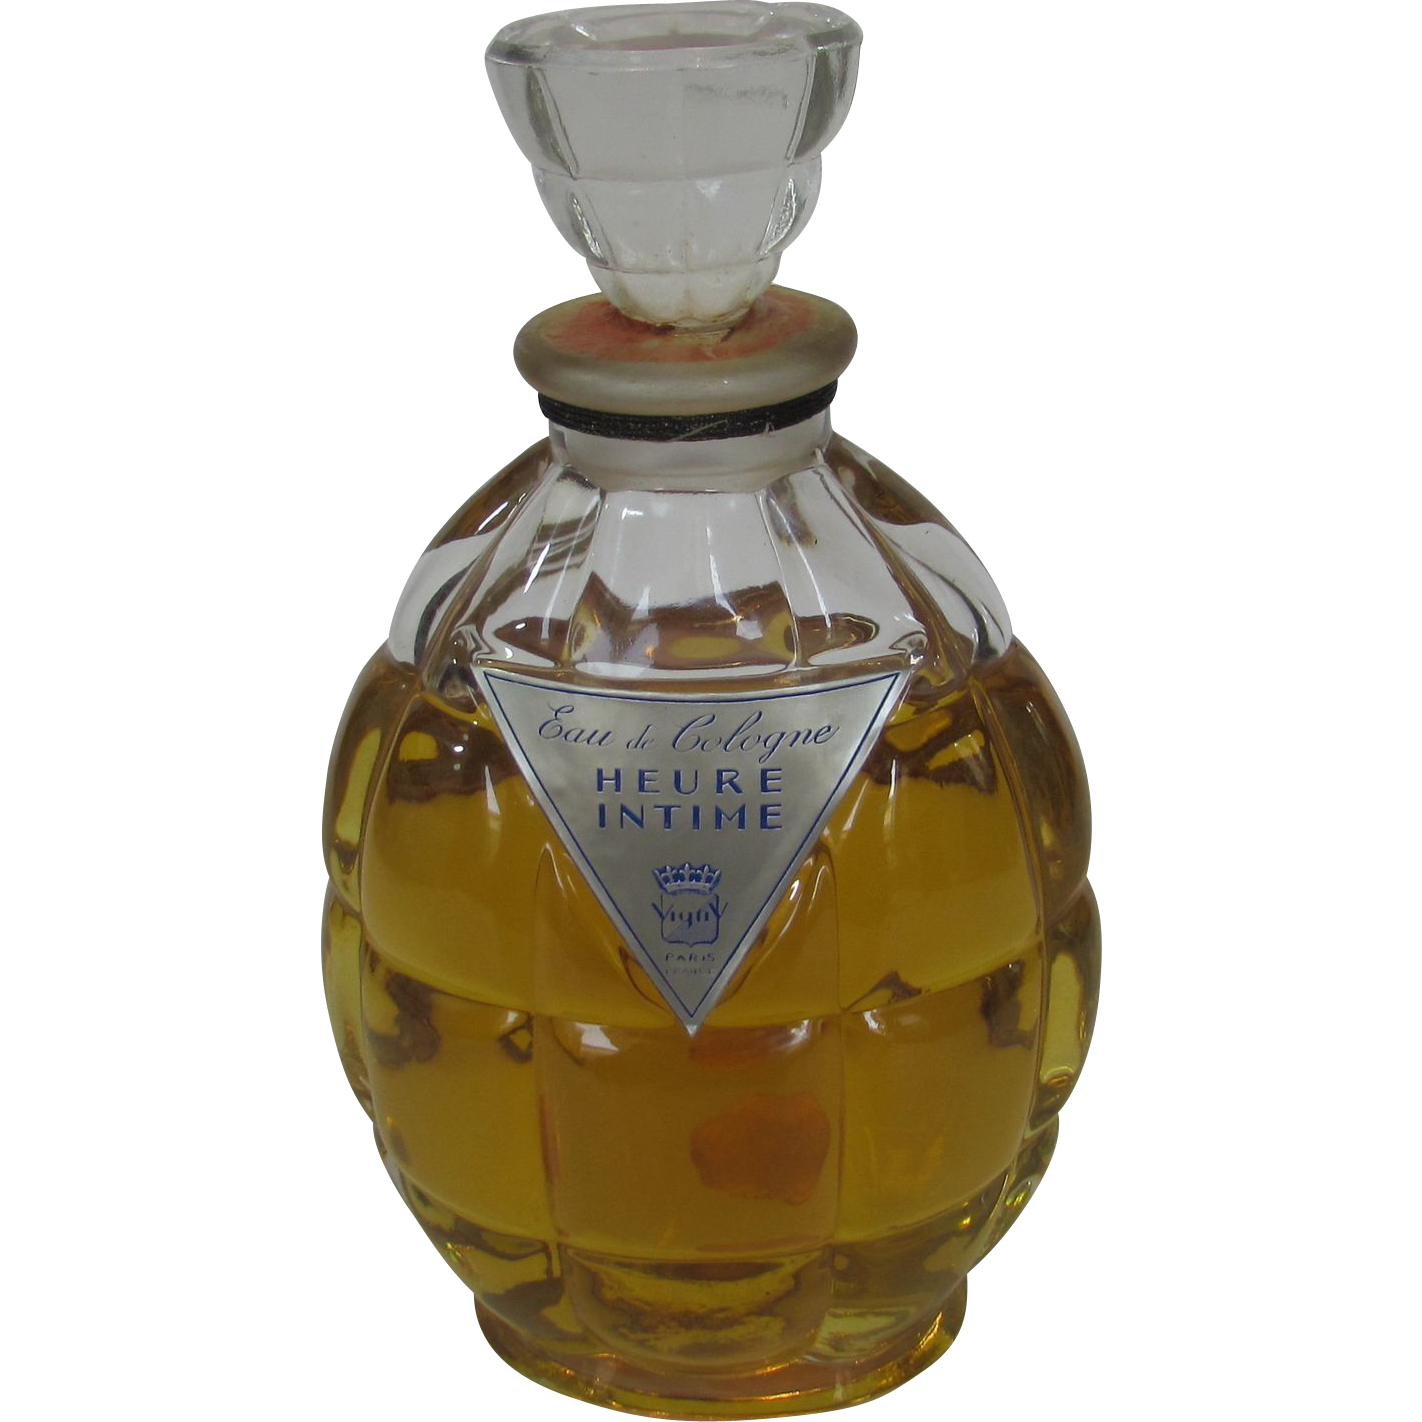 Perfume Factice Vigny Heure In Time Paris From